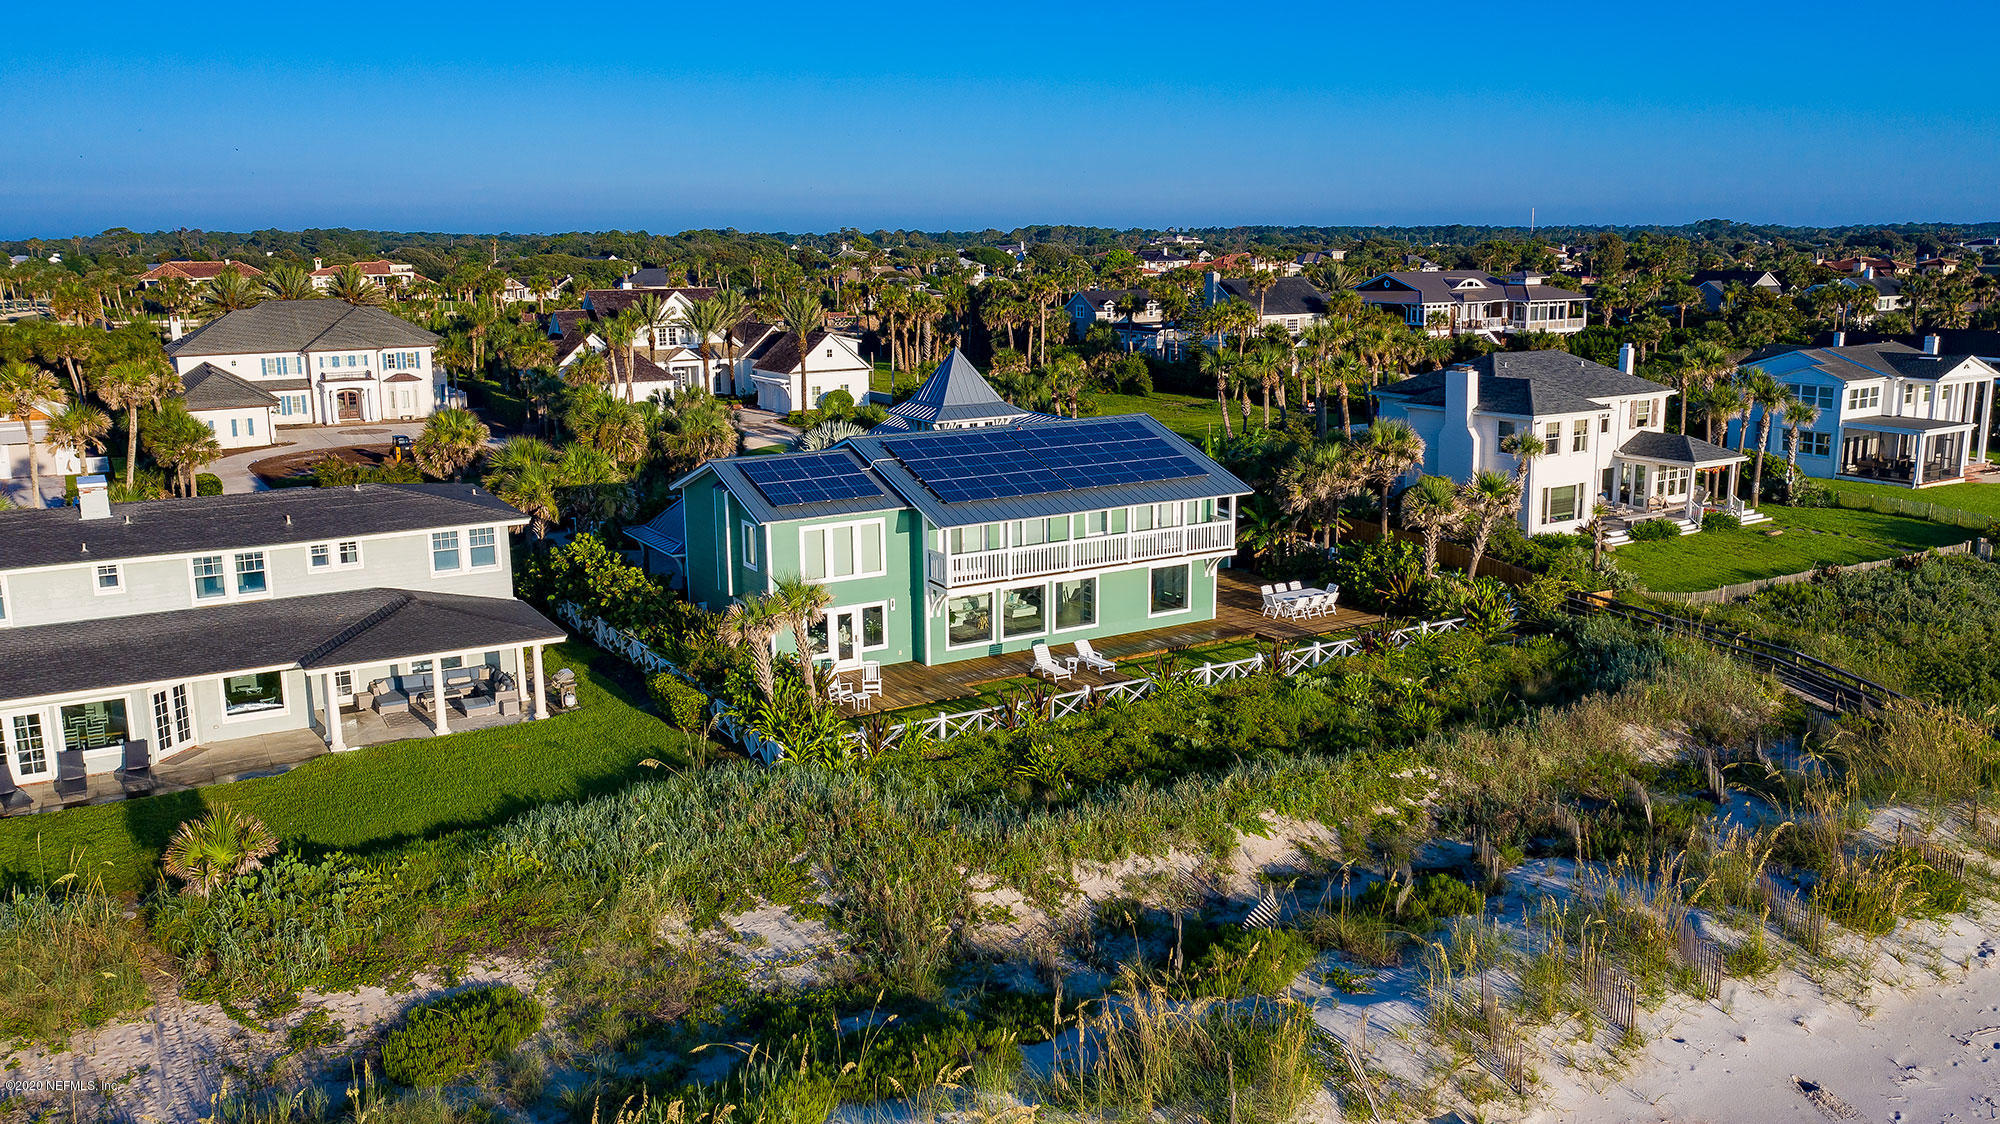 409 PONTE VEDRA, PONTE VEDRA BEACH, FLORIDA 32082, 5 Bedrooms Bedrooms, ,5 BathroomsBathrooms,Residential,For sale,PONTE VEDRA,1061032